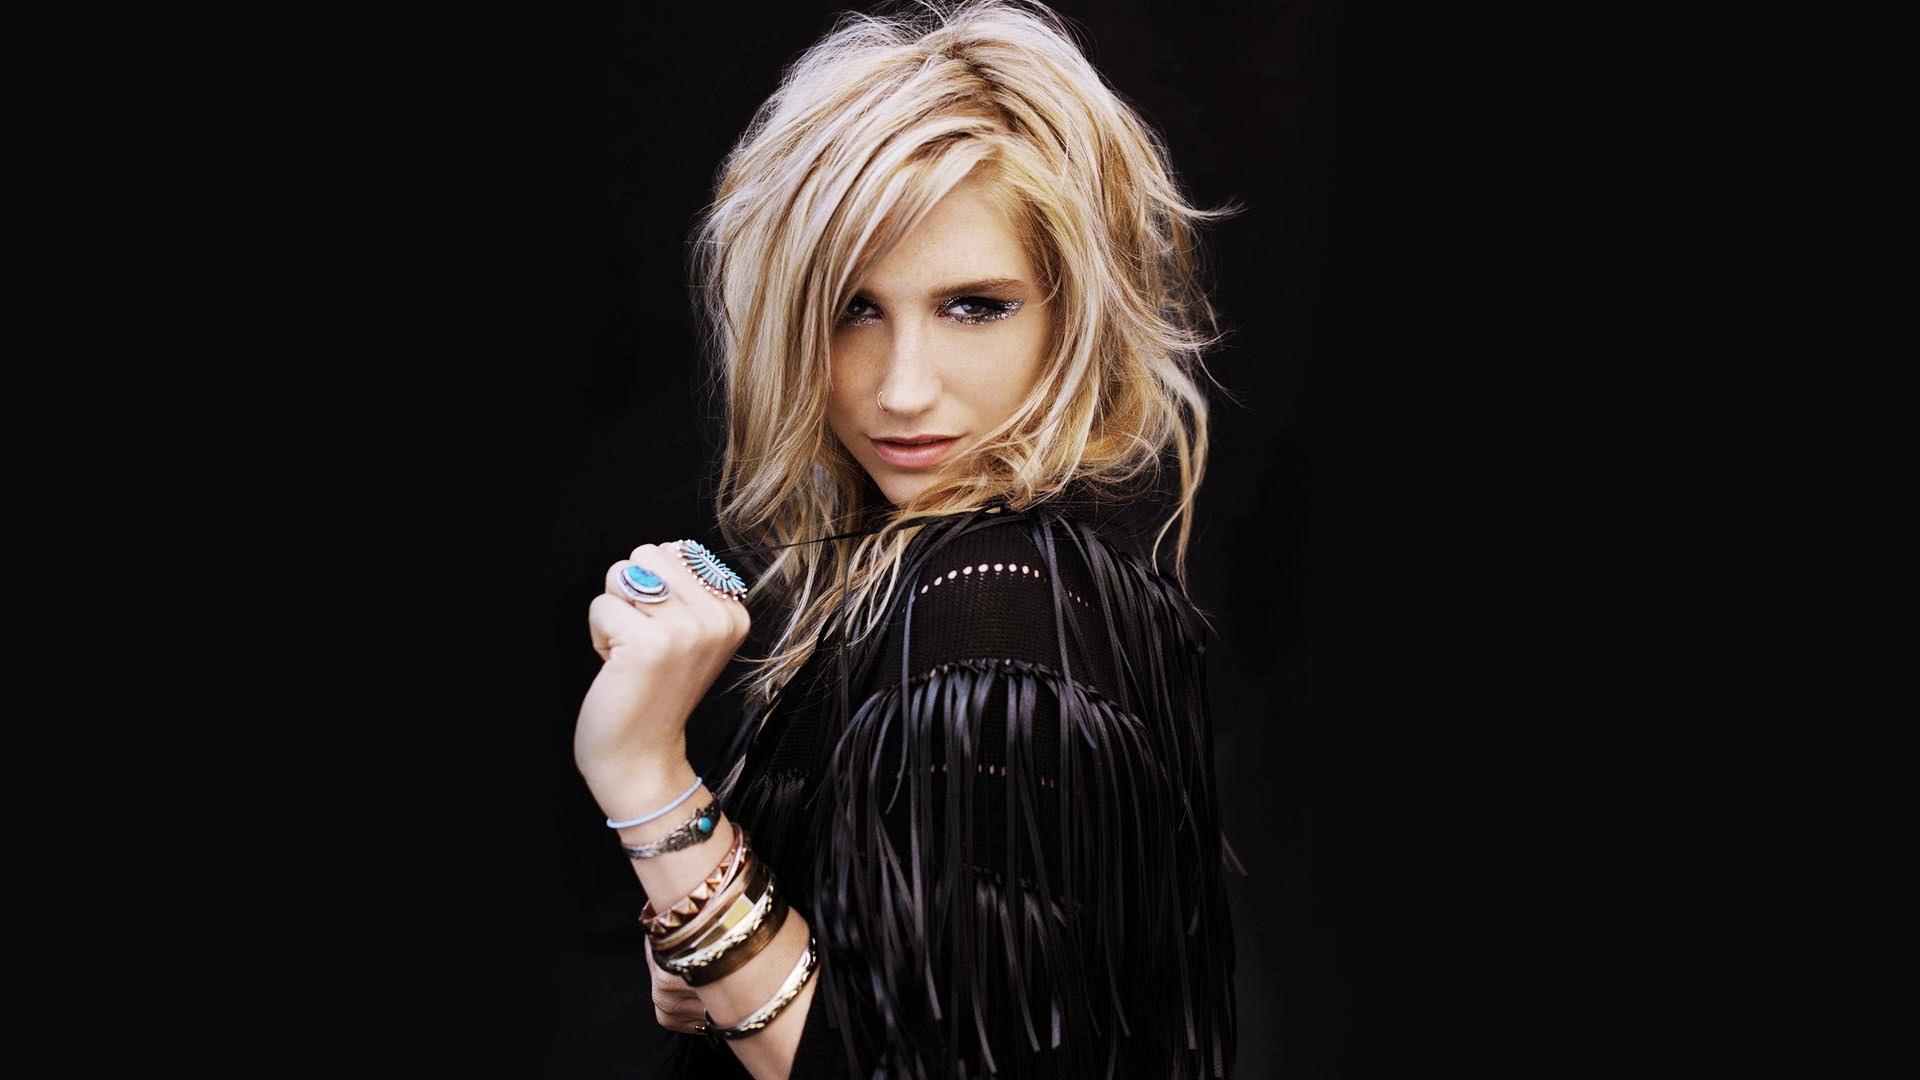 beautiful kesha wallpaper 37058